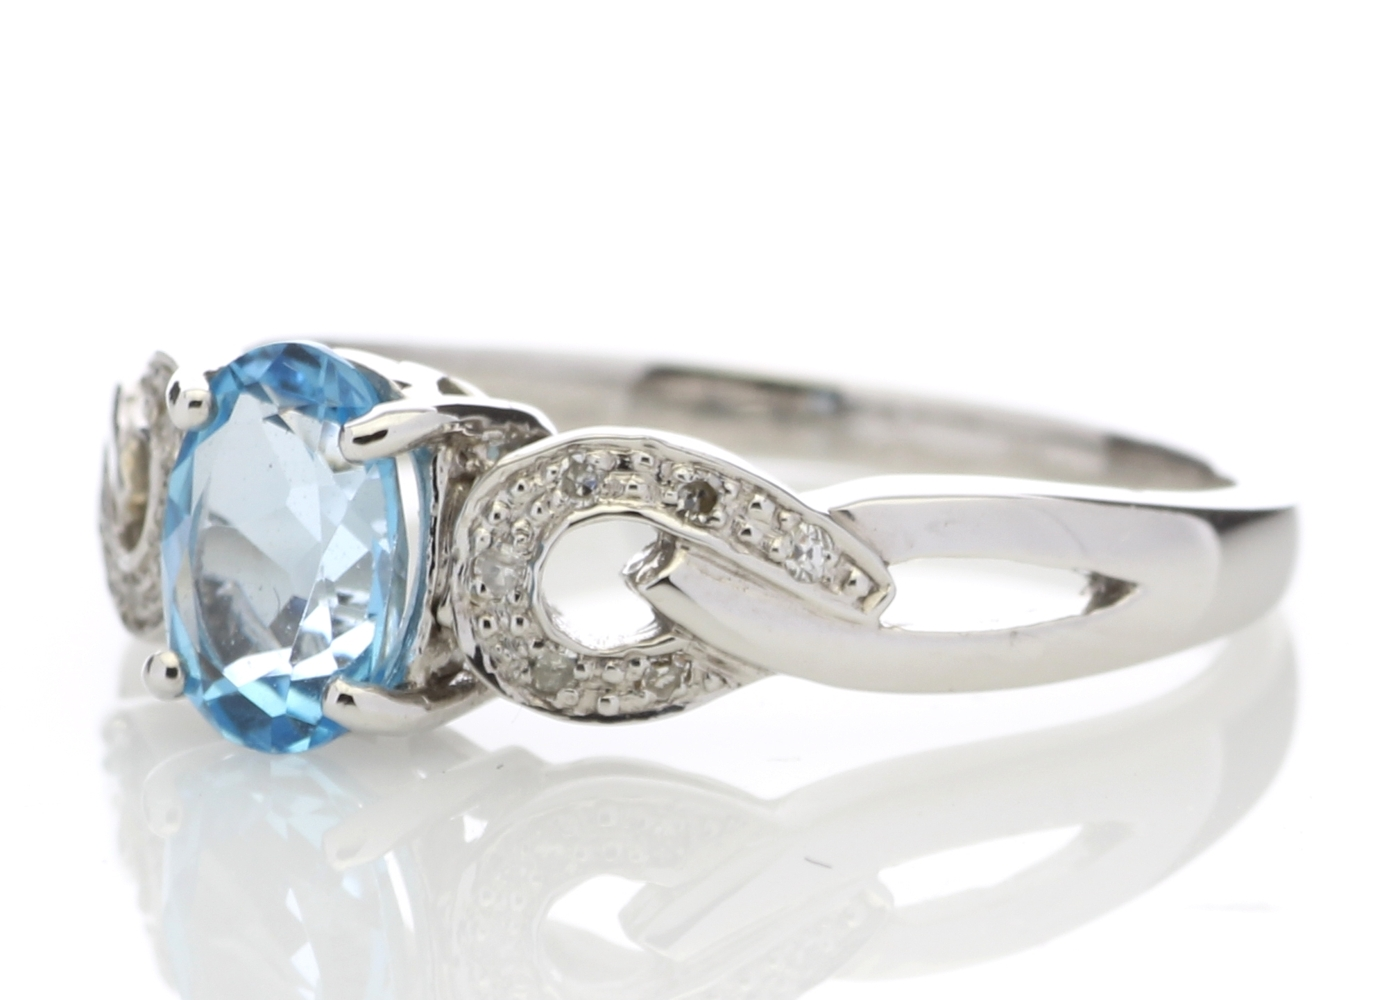 Lot 59 - 9ct White Gold Diamond And Blue Topaz Ring